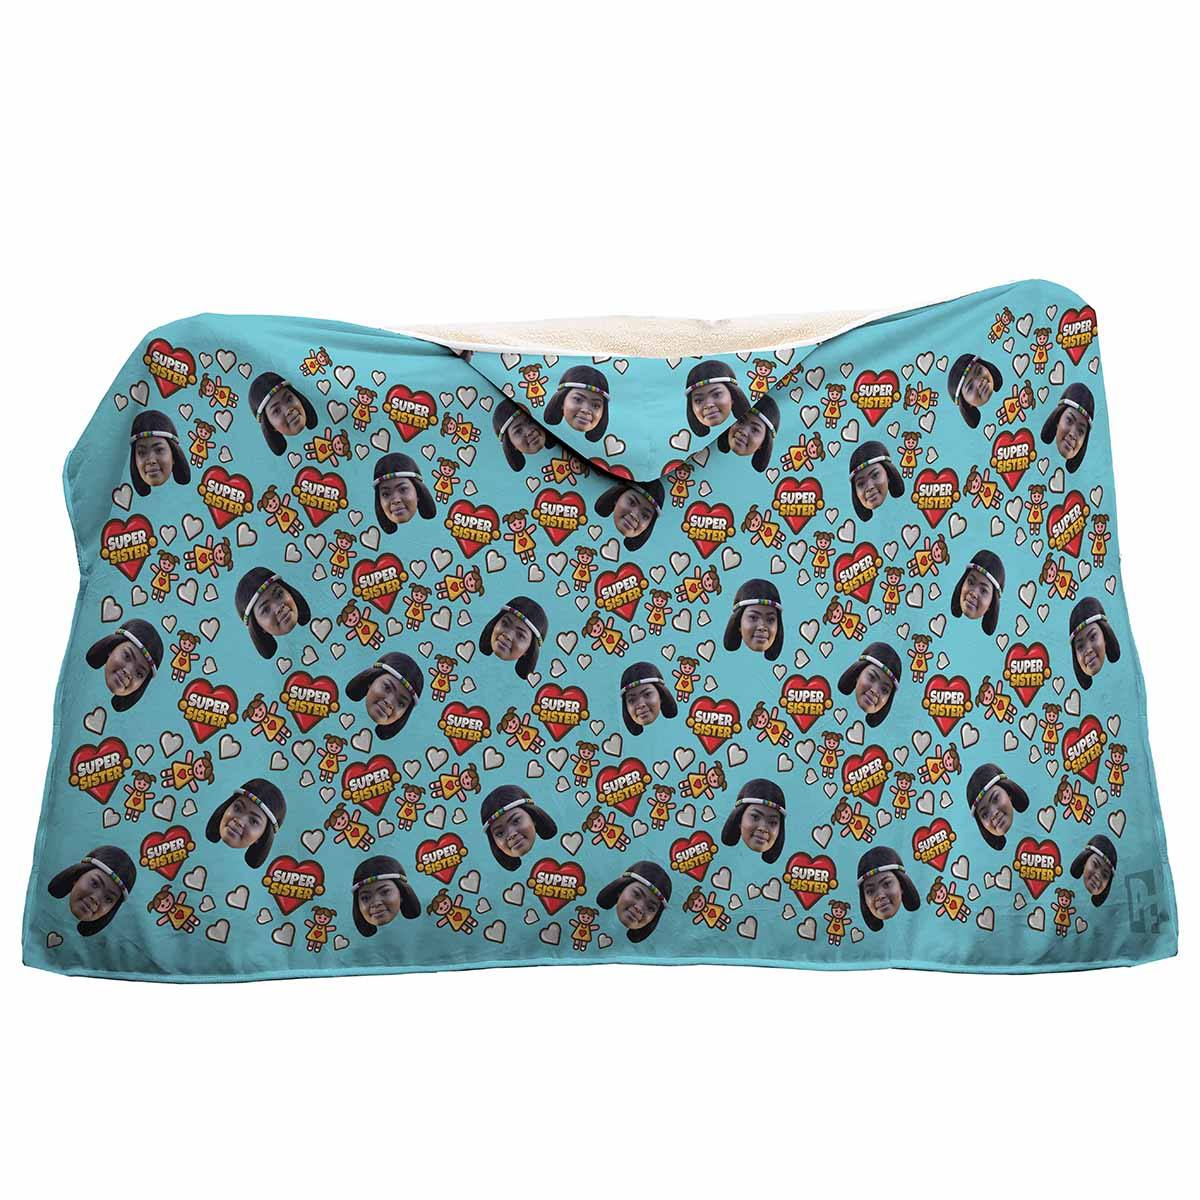 blue Super Sister hooded blanket personalized with photo of face printed on it